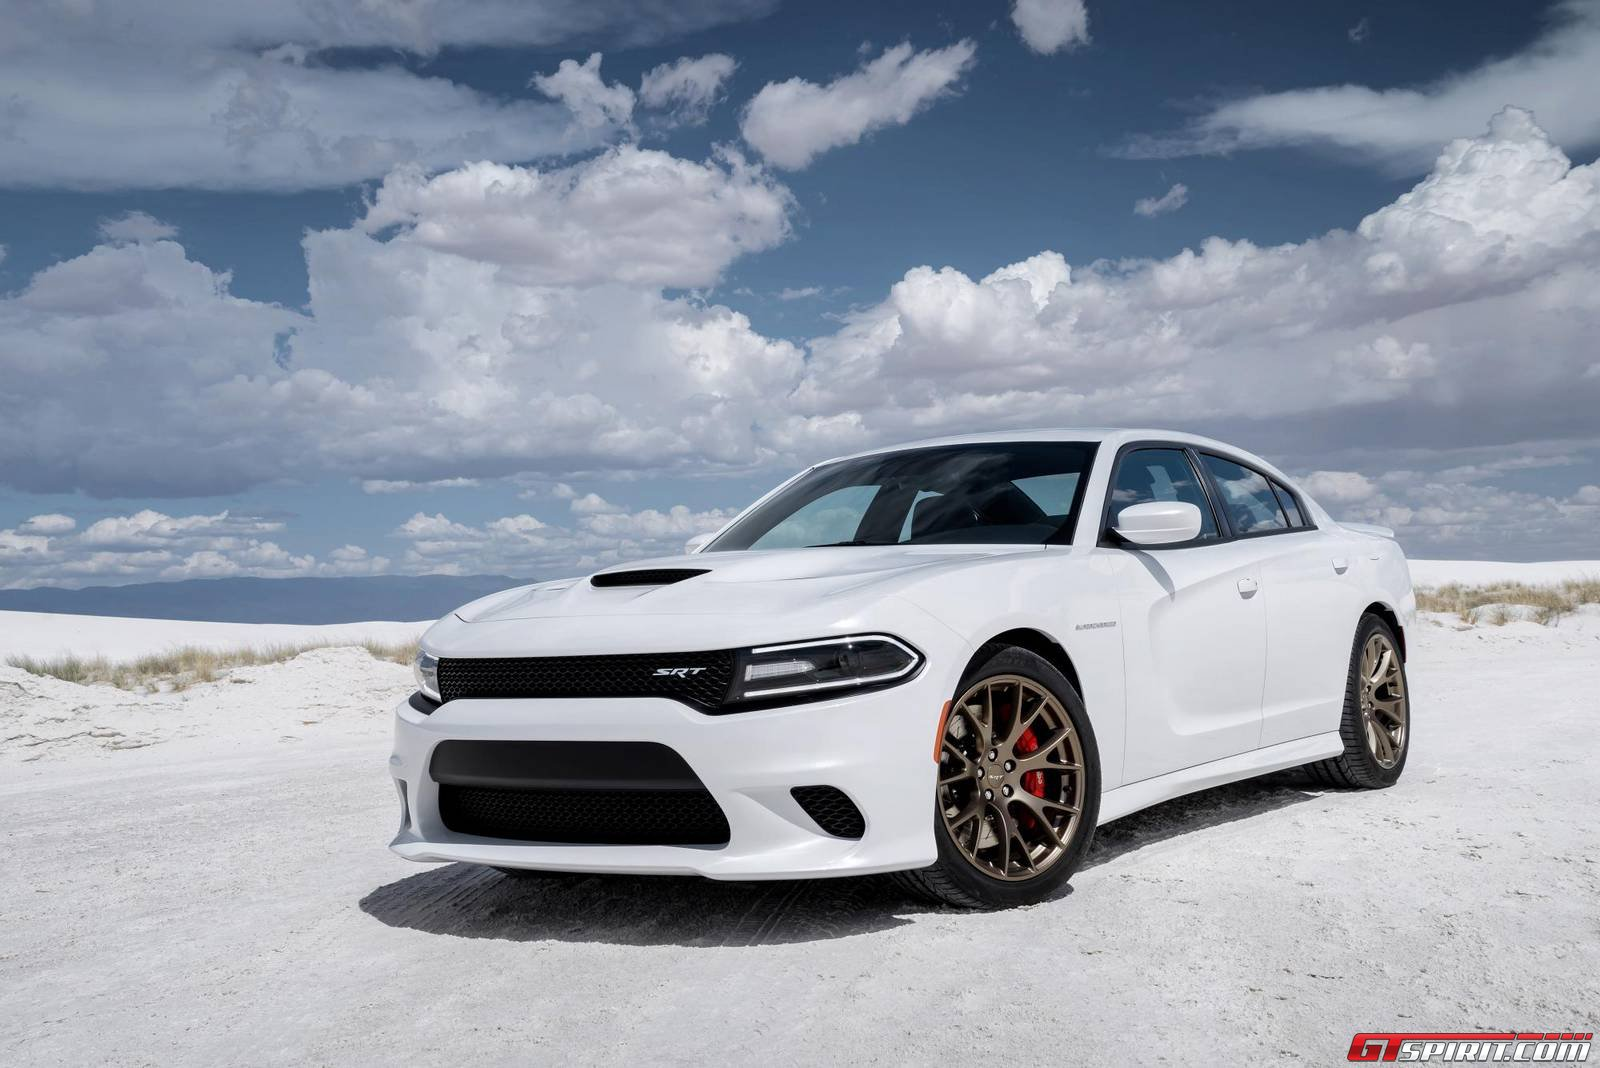 Dodge Charger Gas Mileage - 2017 Dodge Charger